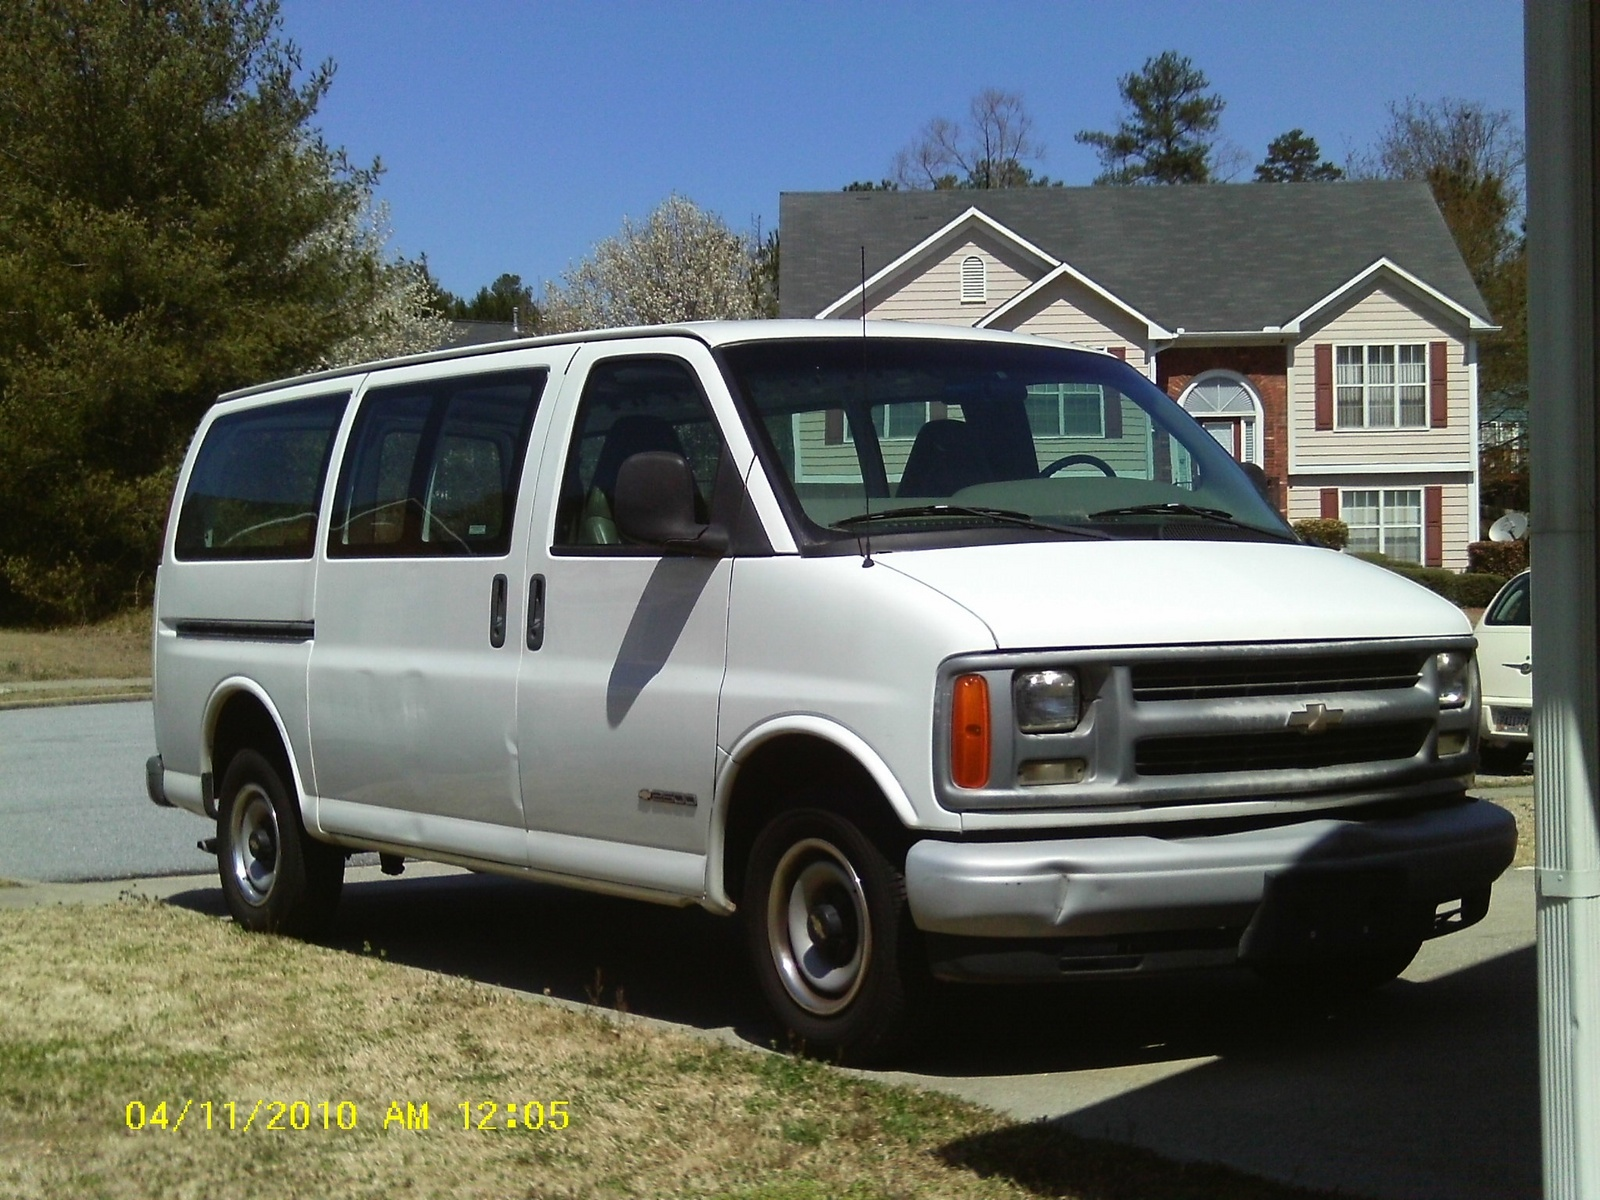 Picture of 2001 Chevrolet Express G2500 LS Passenger Van